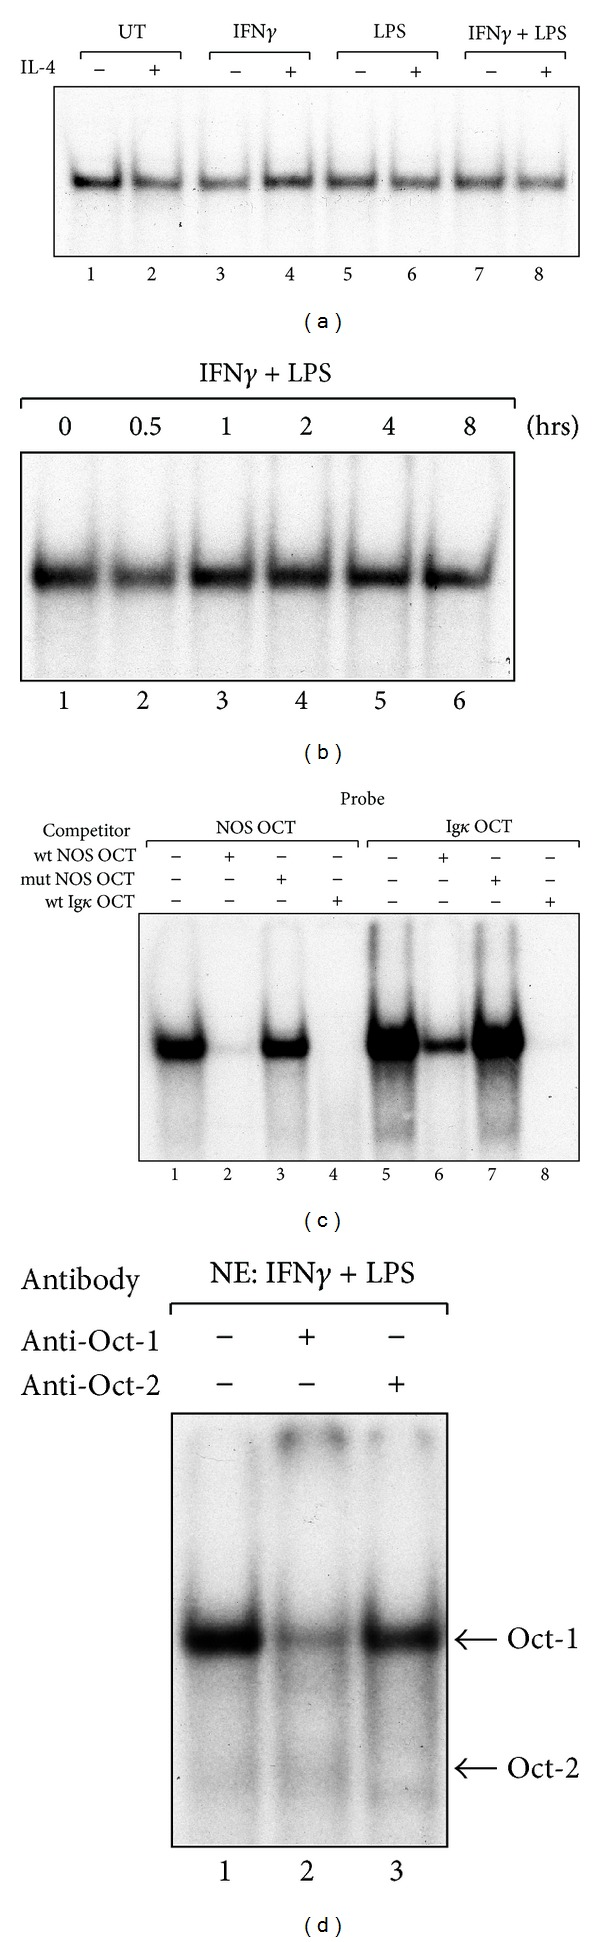 Analysis of OCT DNA-binding activity in nuclear extracts from RAW264.7 cells. (a) Effect of IL-4 treatment on OCT DNA-binding activity. RAW264.7 cells were treated with medium alone or IL-4 (10 ng/mL) for 30 min prior to stimulation with IFN γ (10 ng/mL) and/or LPS (100 ng/mL) for 4 hours before the preparation of nuclear extracts. The OCT binding activity was assessed by EMSA. (b) OCT DNA-binding activity in nuclear extracts from RAW264.7 cells treated with IFN γ and LPS. RAW264.7 cells were cultured in the presence of IFN γ (10 ng/mL) and LPS (100 ng/mL) for the indicated time prior to the preparation of nuclear extracts. In total, 10 μ g of each nuclear extract was analyzed for OCT binding activity by EMSA. (c) Analysis of OCT DNA-binding affinity to Nos2 OCT by an oligonucleotide competition assay. Nuclear extracts were prepared from RAW264.7 cells stimulated with IFN γ (10 ng/mL) and LPS (100 ng/mL) for 30 min. The OCT DNA-binding activity was determined by EMSA using radio-labeled OCT oligonucleotides corresponding to the Nos2 OCT (NOS OCT) site or the immunoglobulin κ chain OCT site (Igk OCT) in the presence or absence of a 25-fold excess of unlabeled wild-type (wt) or mutant (mut) oligonucleotide, as indicated. (d) Antibody super-shift assay for Nos2 OCT. Nuclear extracts (NE) from RAW264.7 cells stimulated with IFN γ (10 ng/mL) and LPS (100 ng/mL) for 30 min were incubated with the indicated antibodies (1 μ g each) before analysis of the binding activity, as described above.